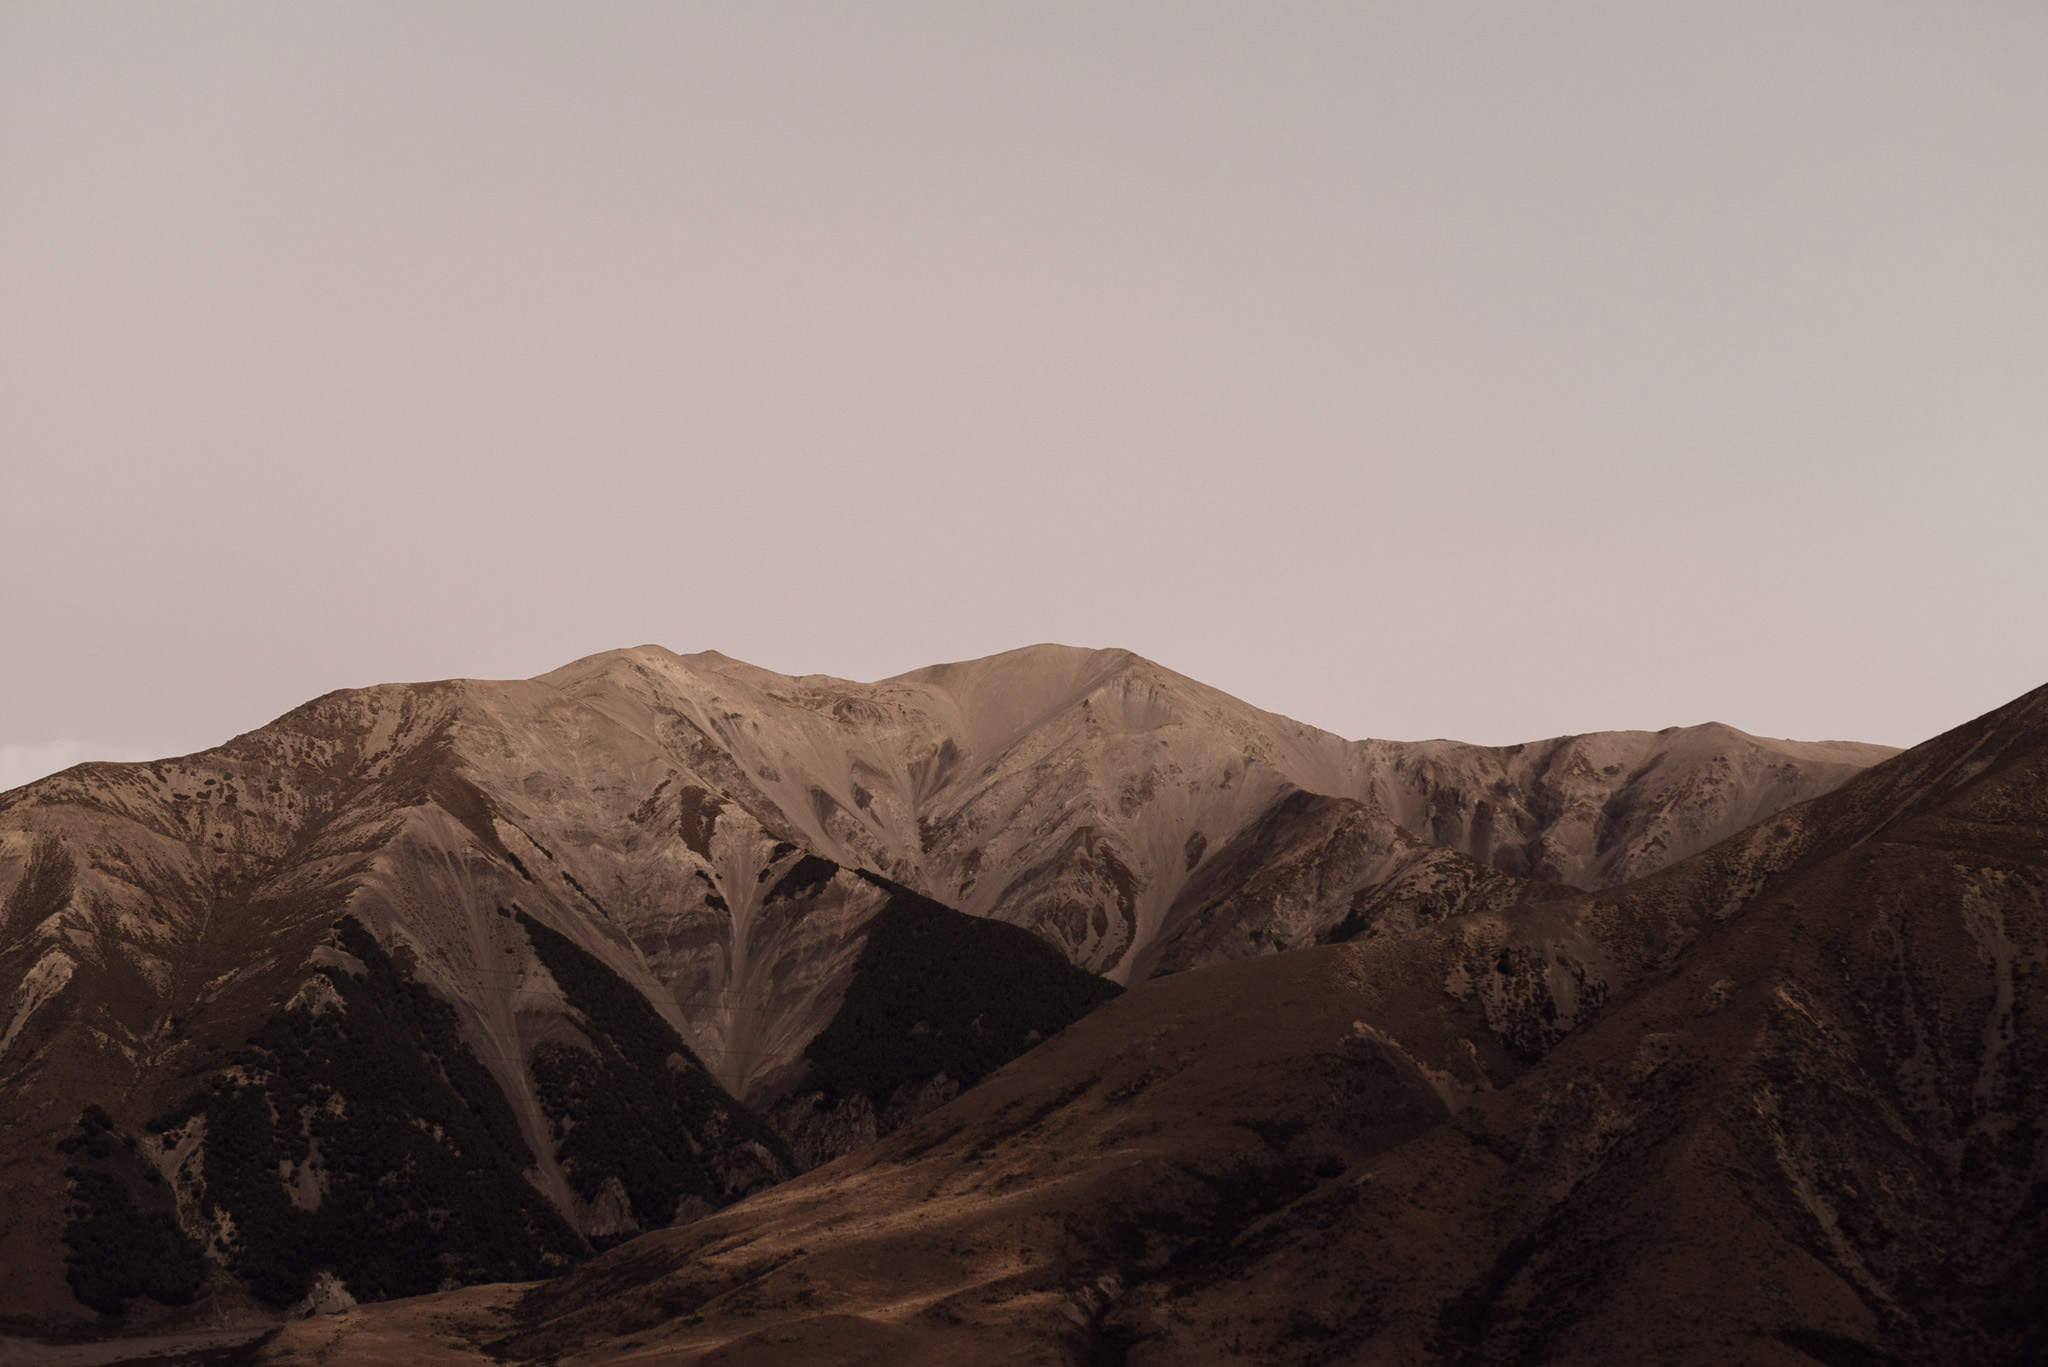 Mountain range at Castle Hill, New Zealand